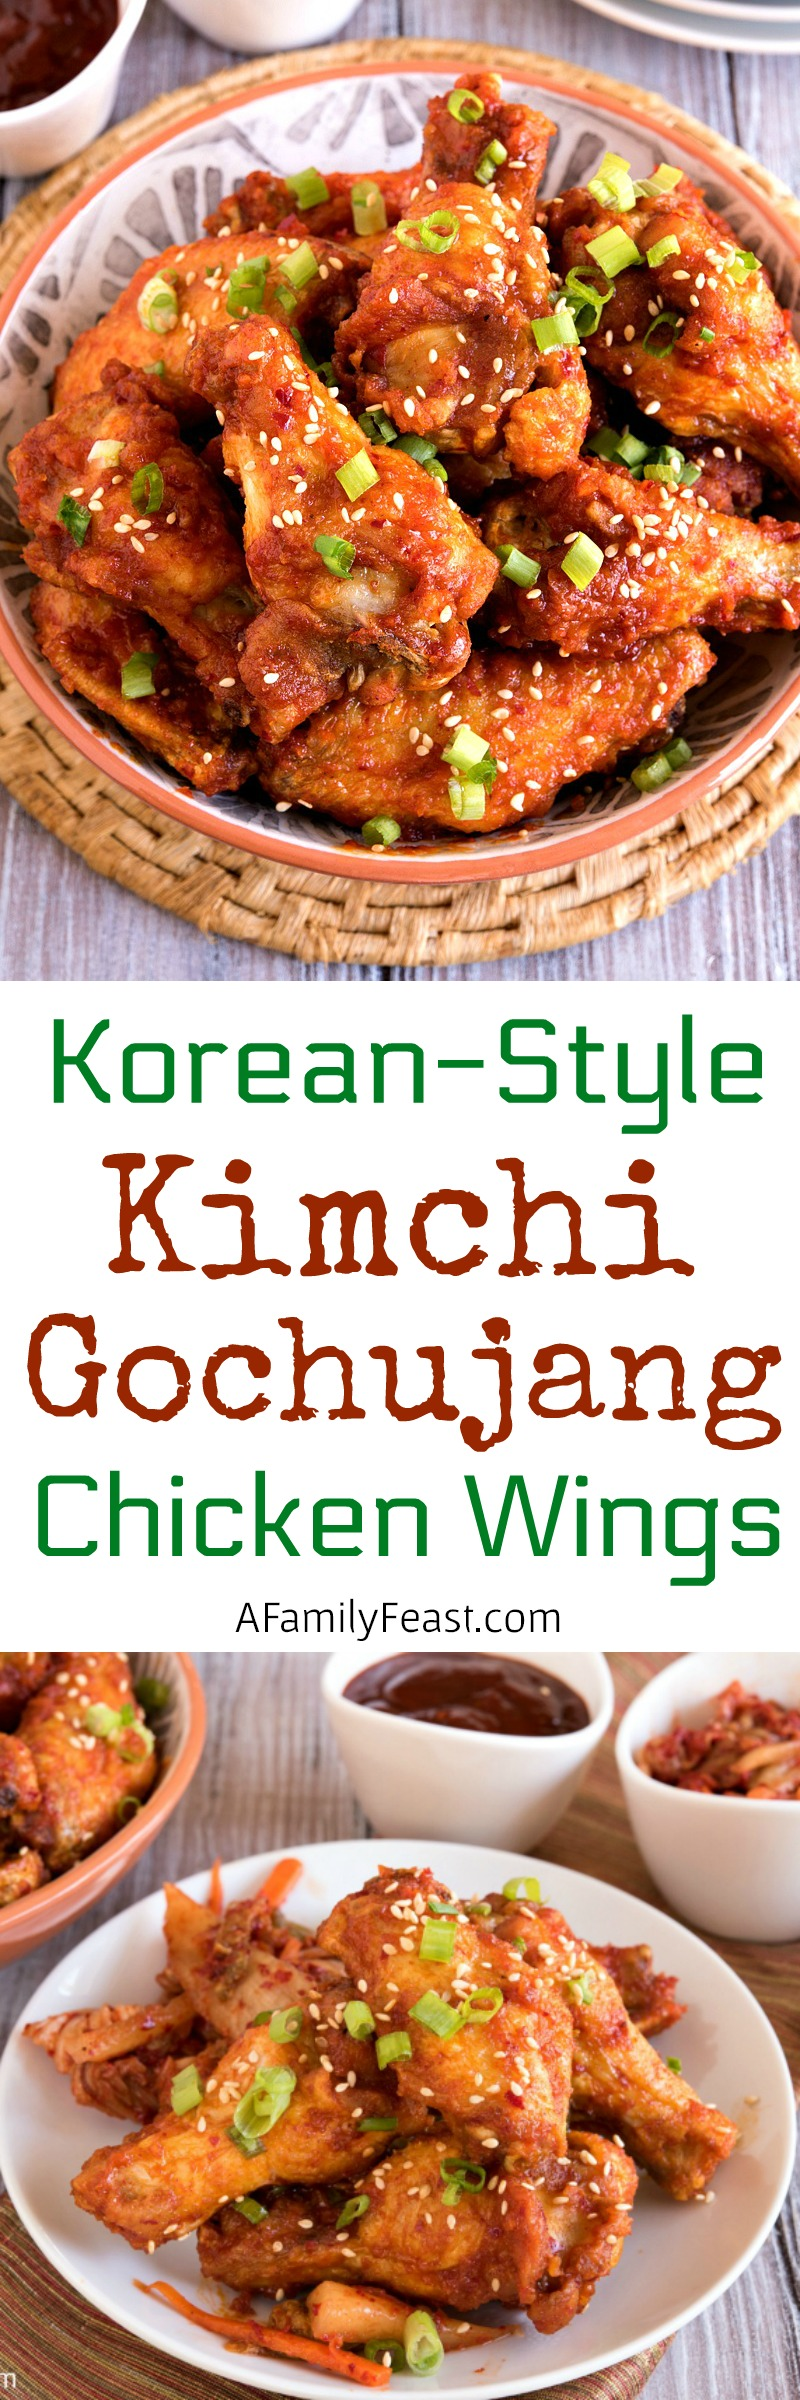 Spicy and delicious...Don't serve the same old chicken wings at this weekend's game day party. Make our Korean-Style Kimchi Gochujang Chicken Wings instead!